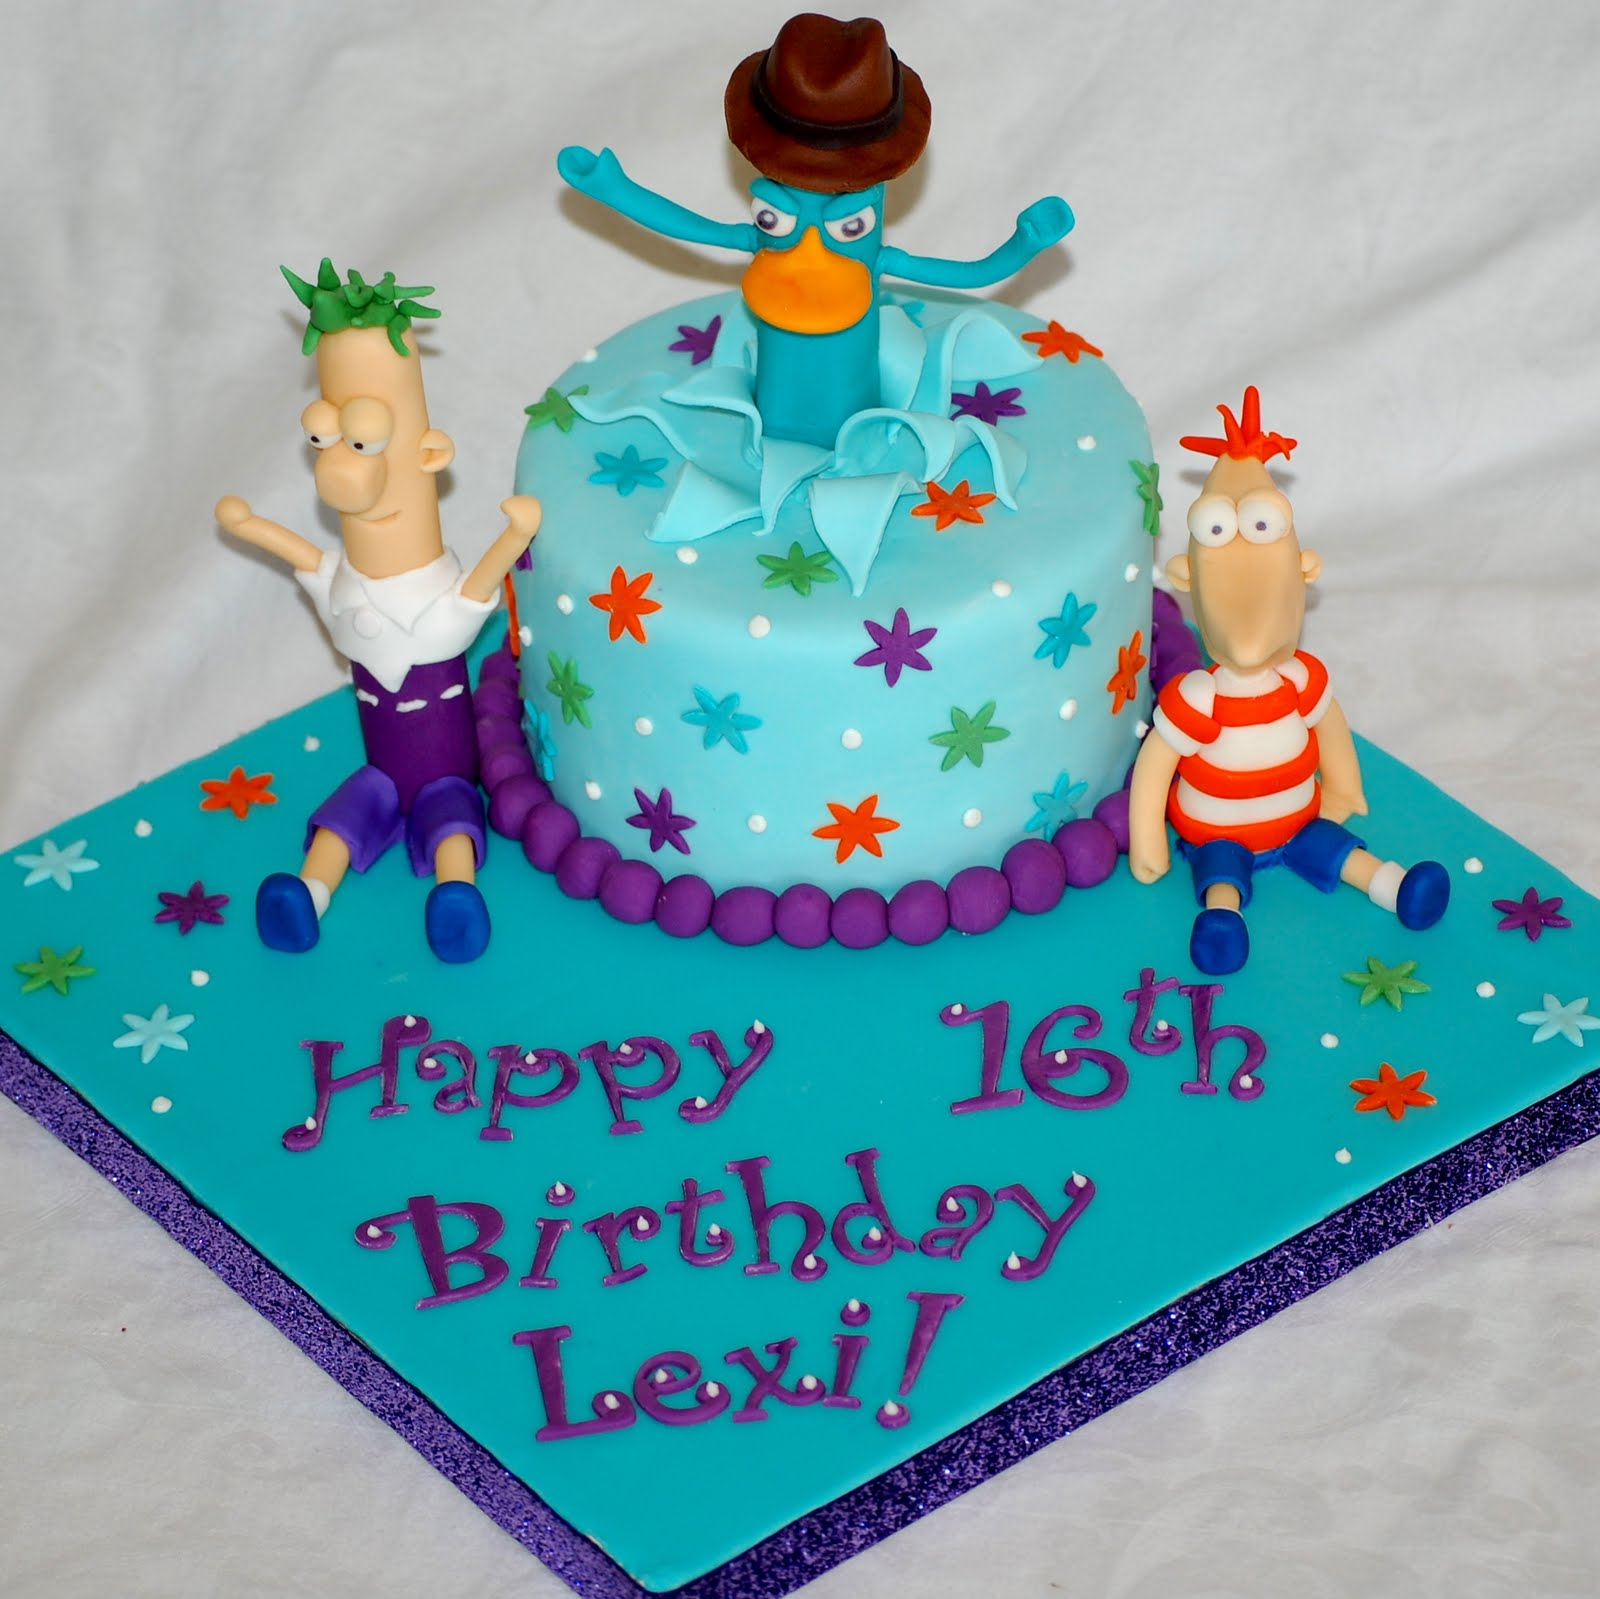 Cakefilley Phineas And Ferb Birthday Cake